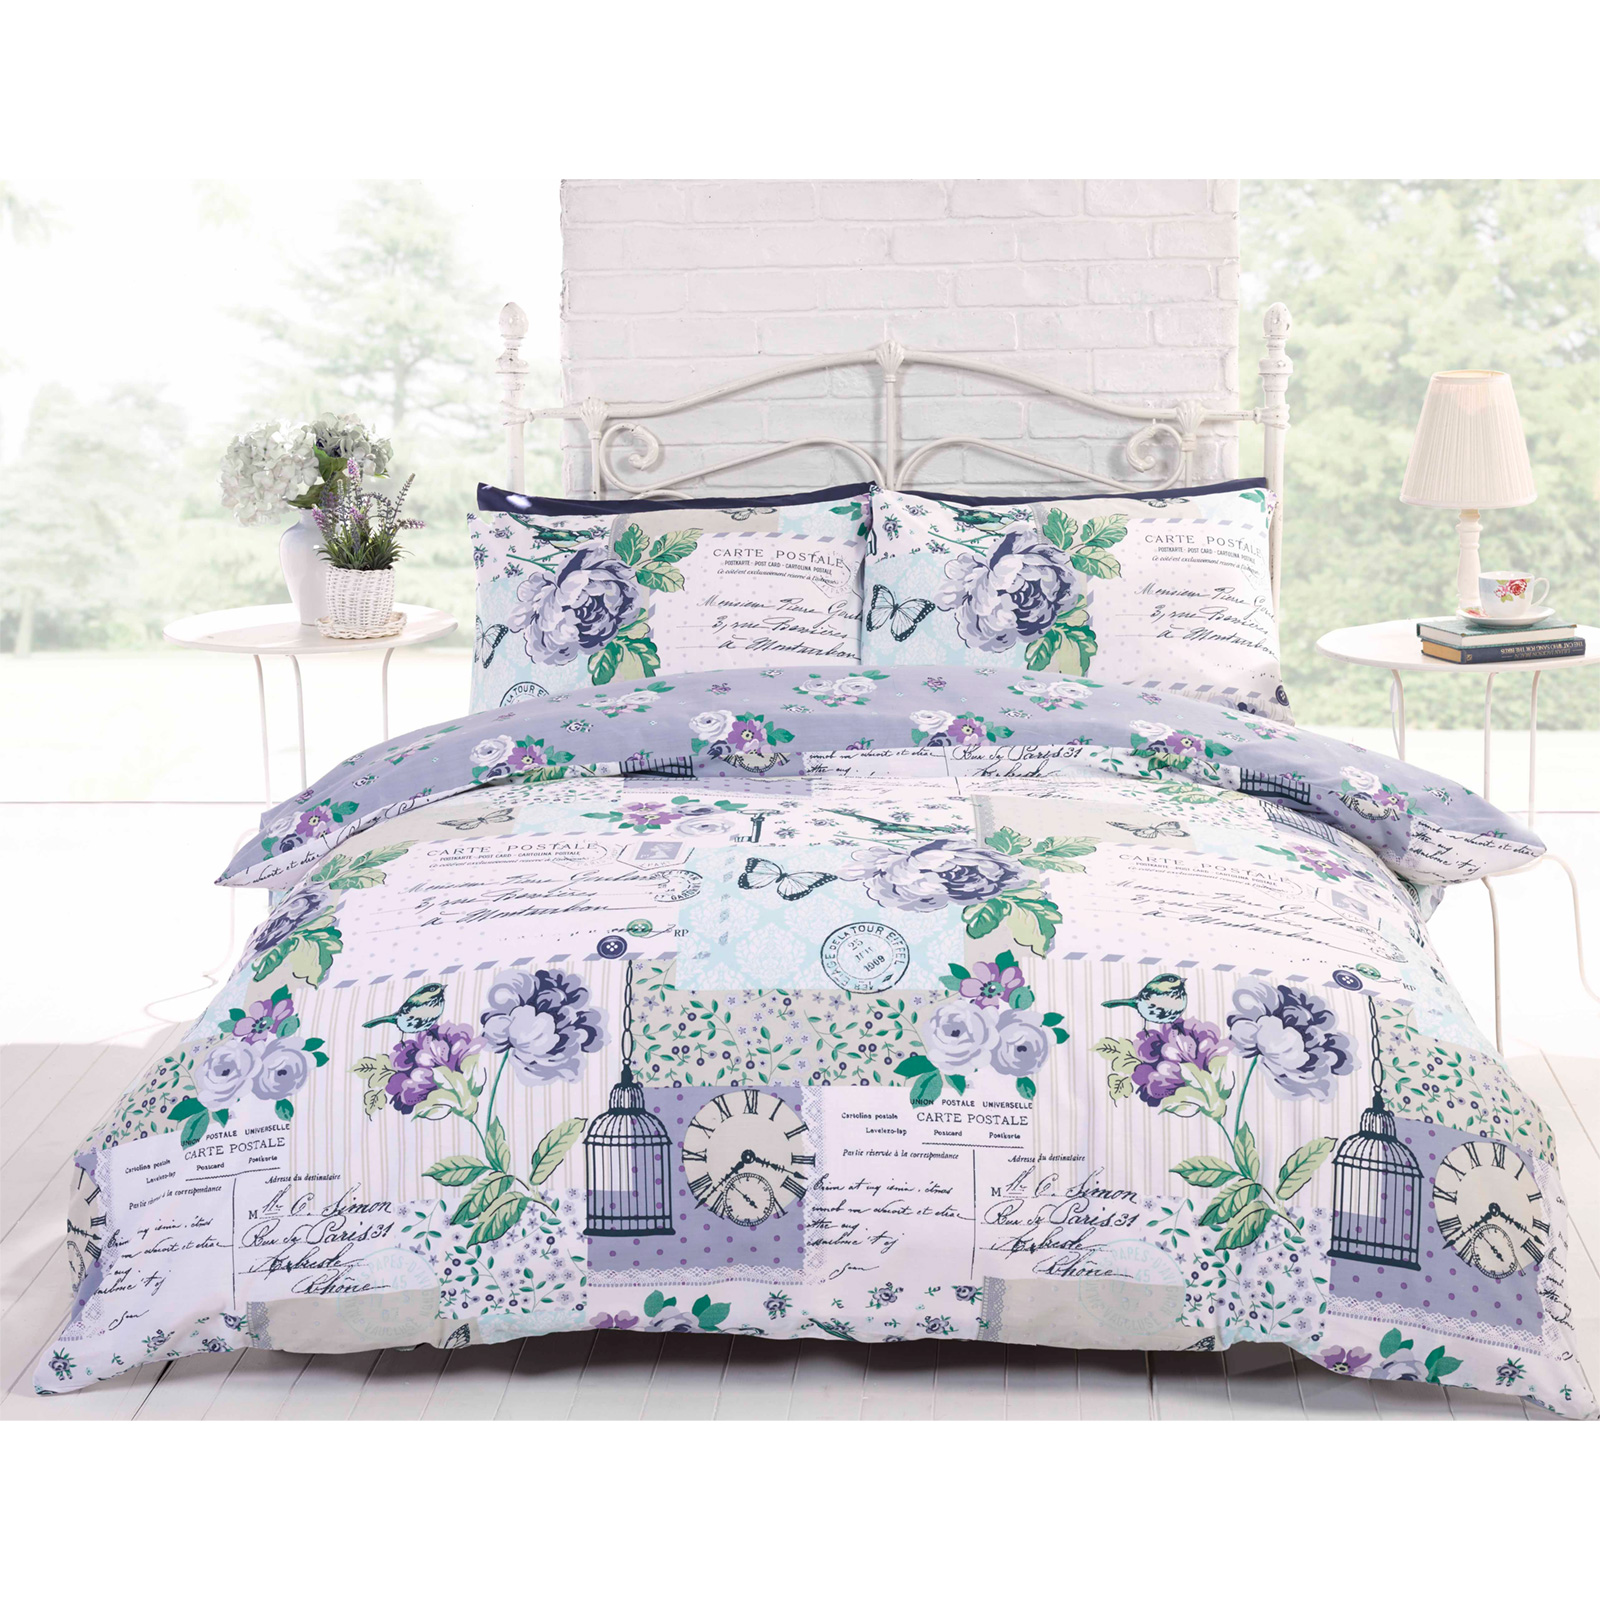 fran ais patchwork parure de lit avec housse de couette avec floral roses papillon post card. Black Bedroom Furniture Sets. Home Design Ideas